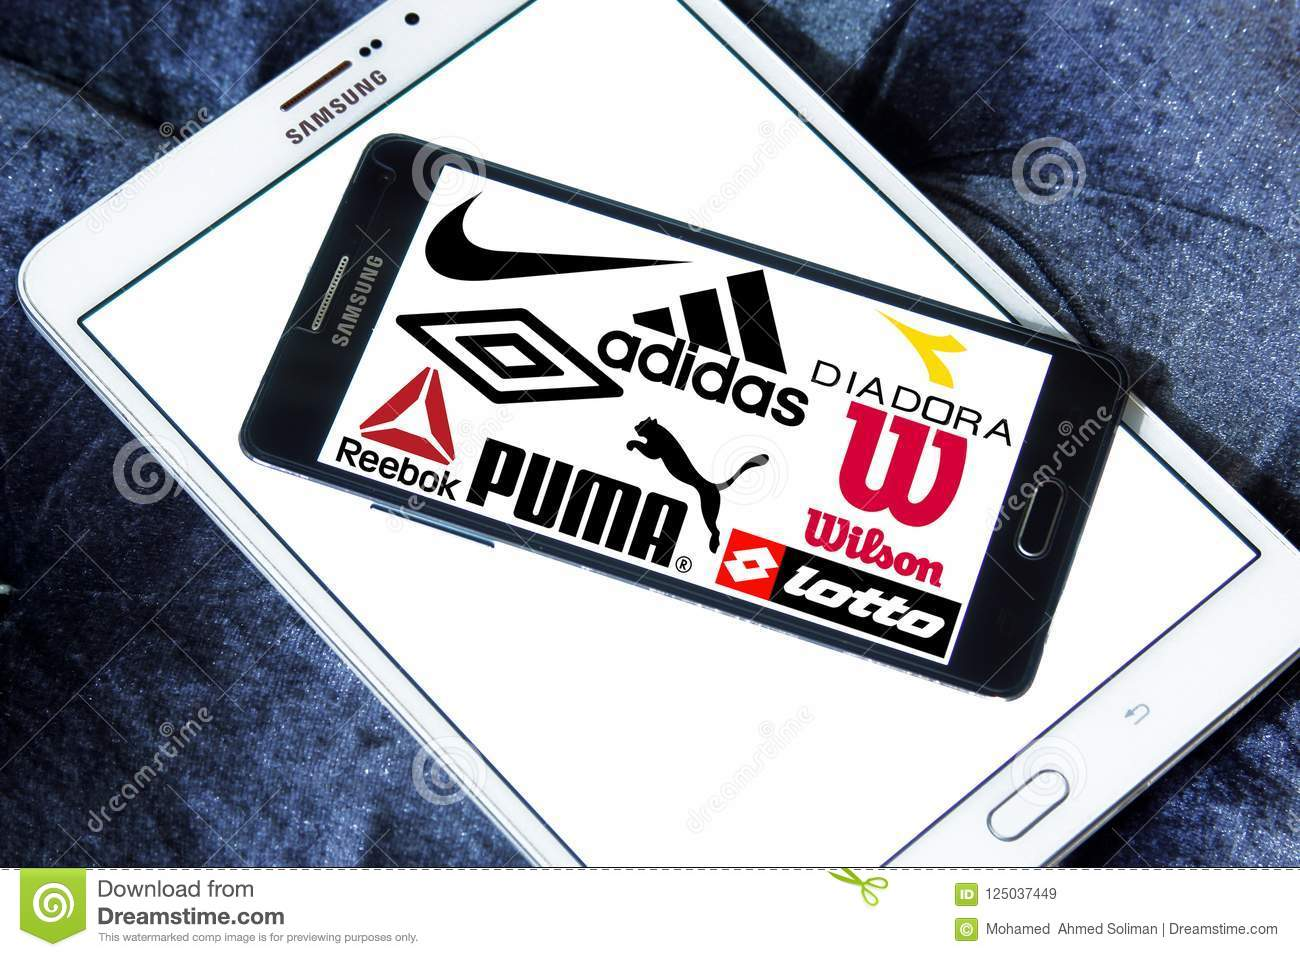 d80854890 Logos and brands of most famous and popular sportswear companies on samsung  mobile. sporting brands like nike, adidas, puma, asics, fila, reebok,  diadora, ...